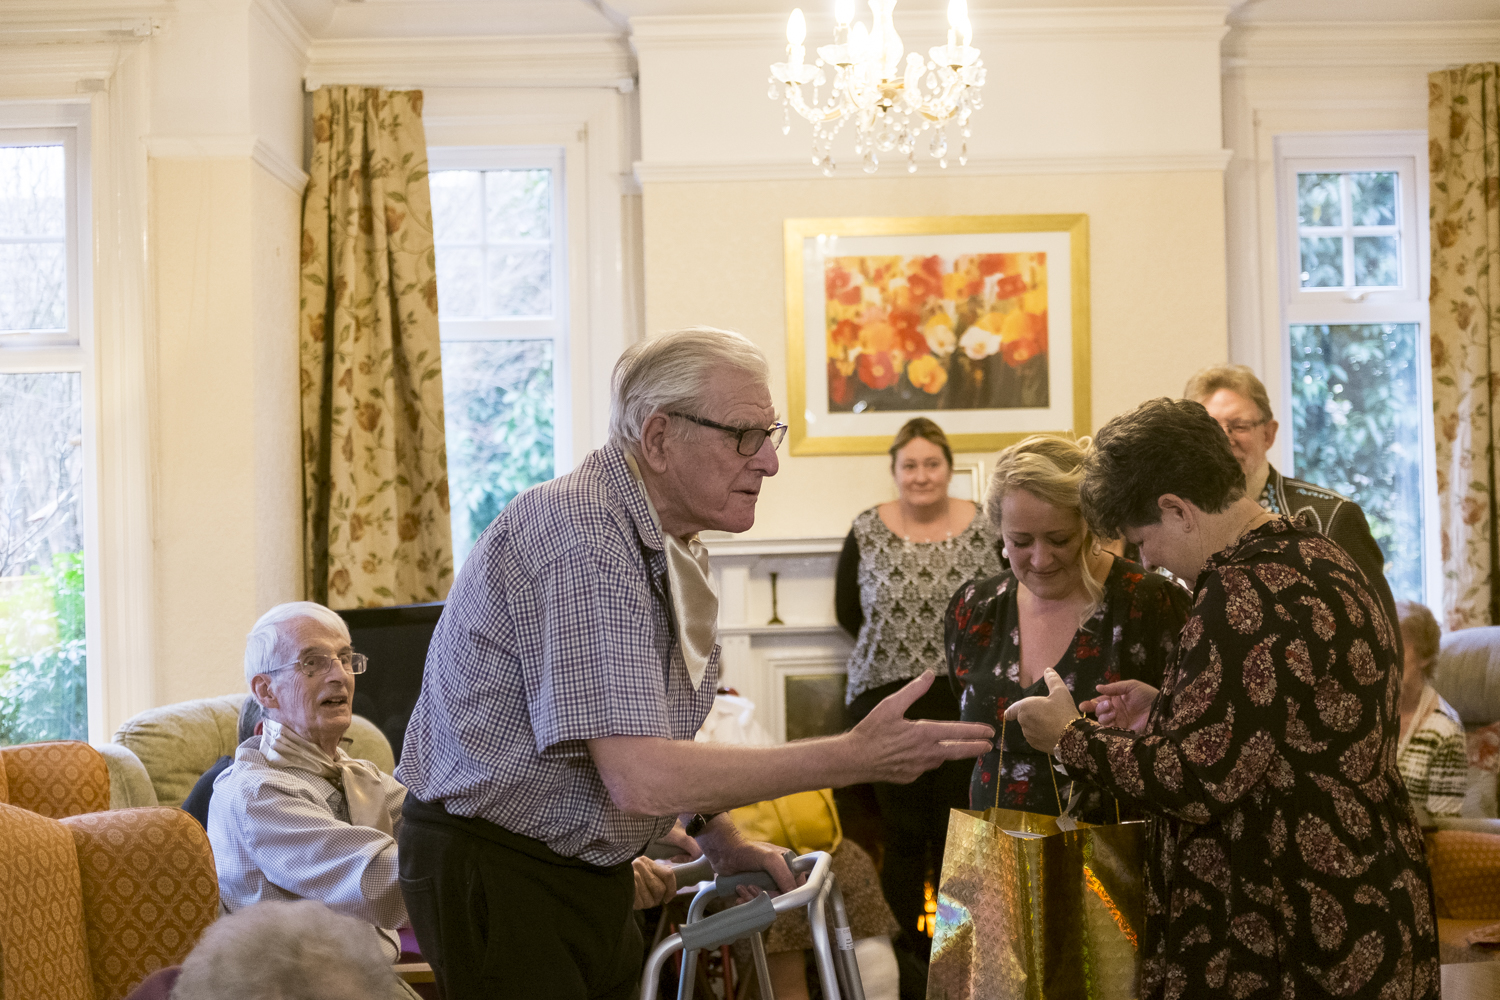 Harrowby-Lodge-Nursing-Home-30th-Anniversary-22.jpg